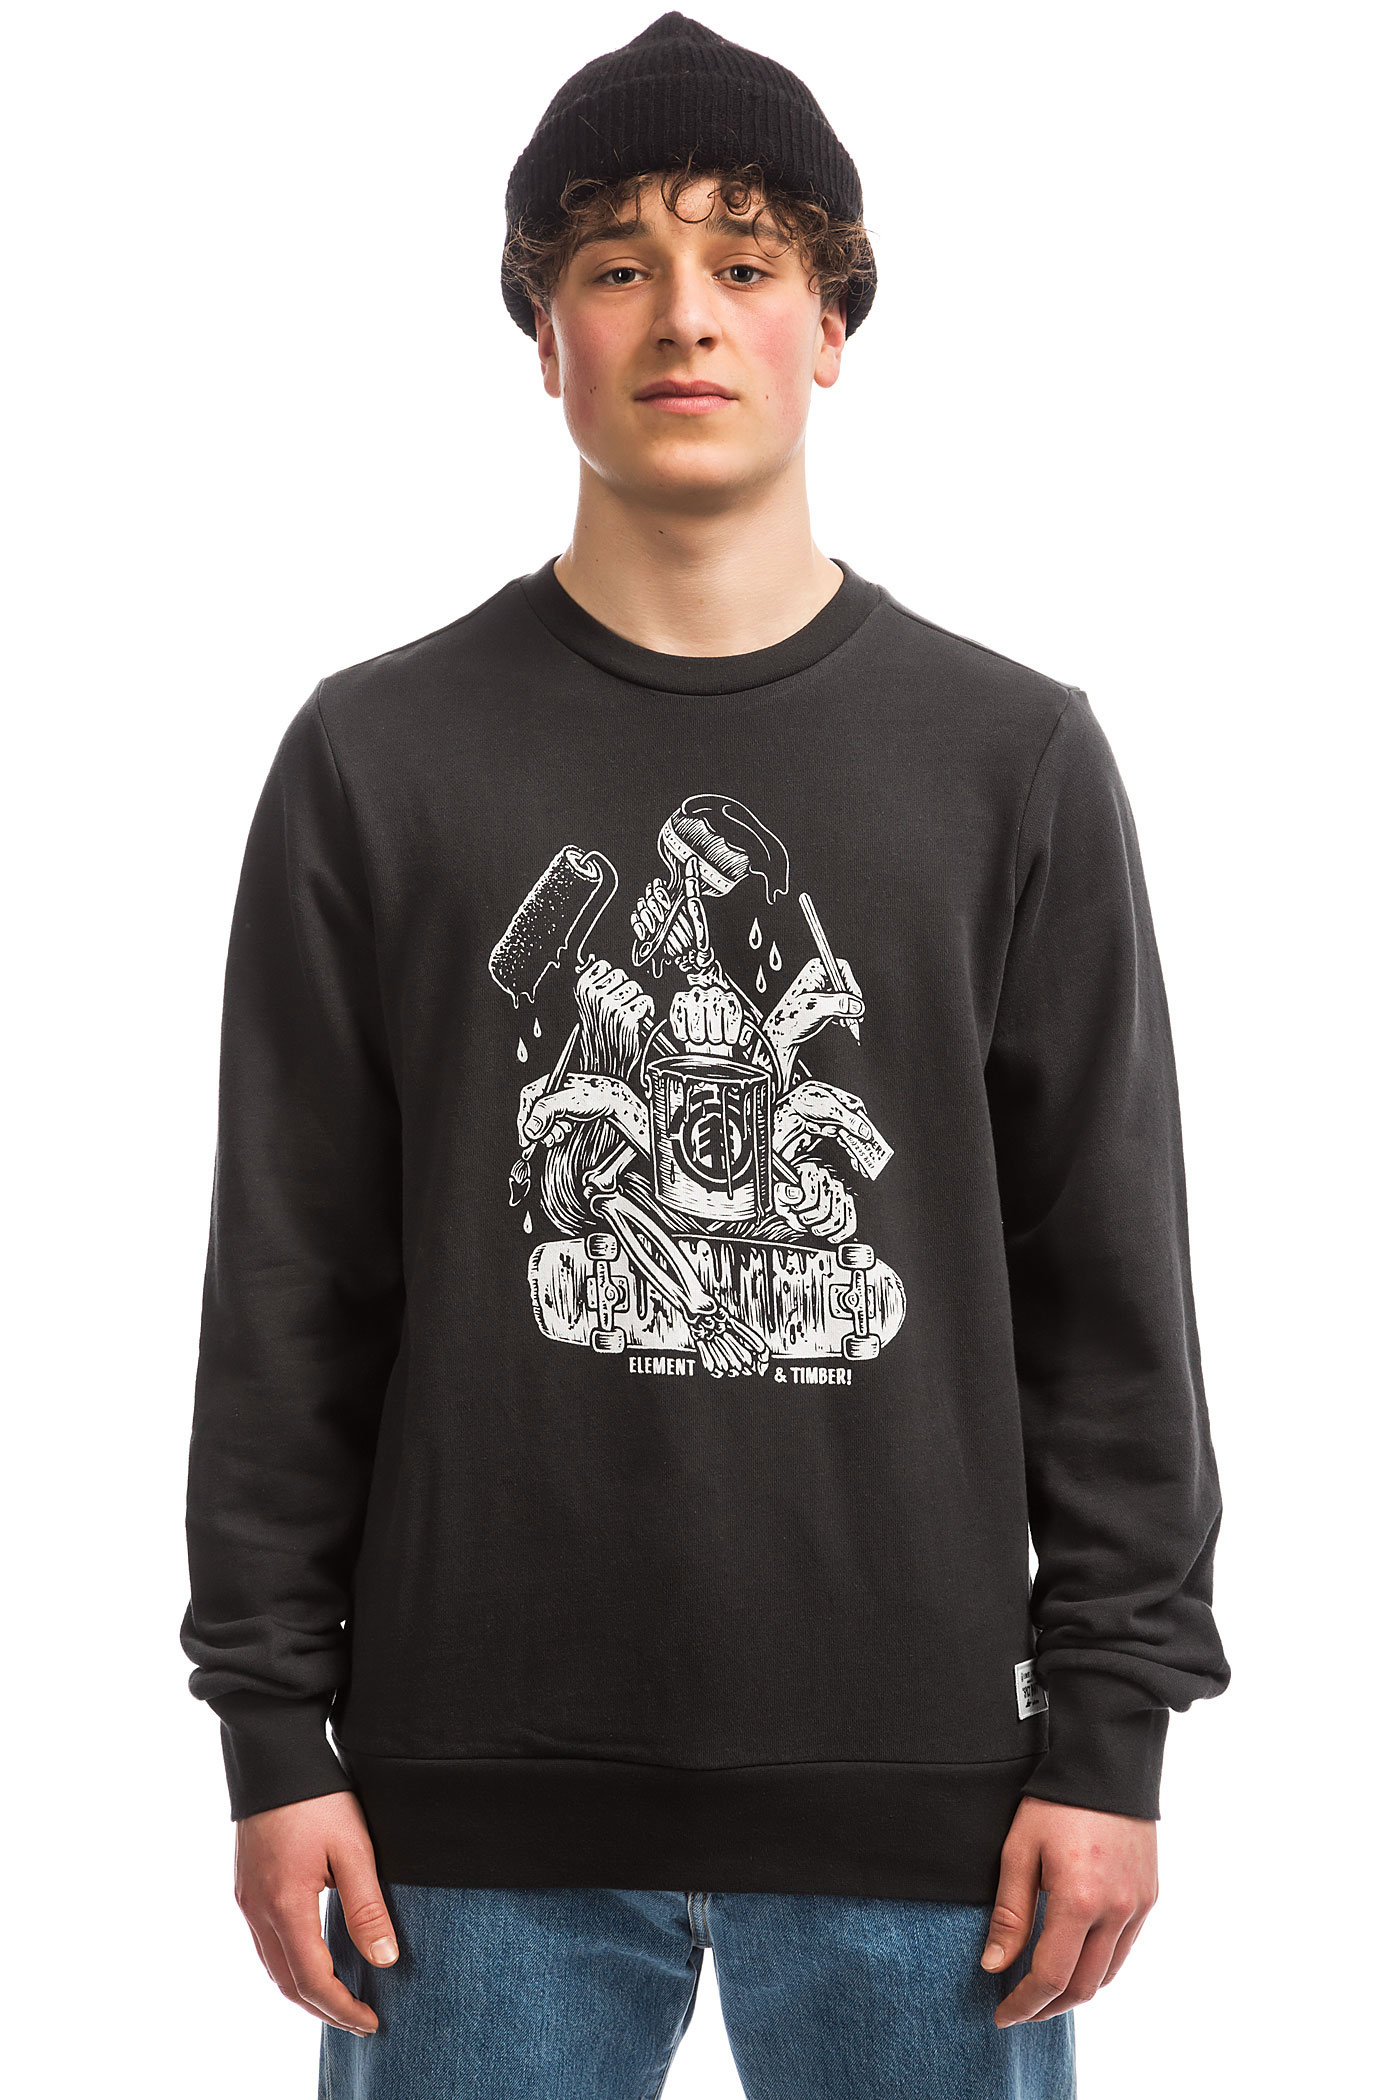 Element Sweatshirtoff Black Hand X TimberBy eWBoQrxdC